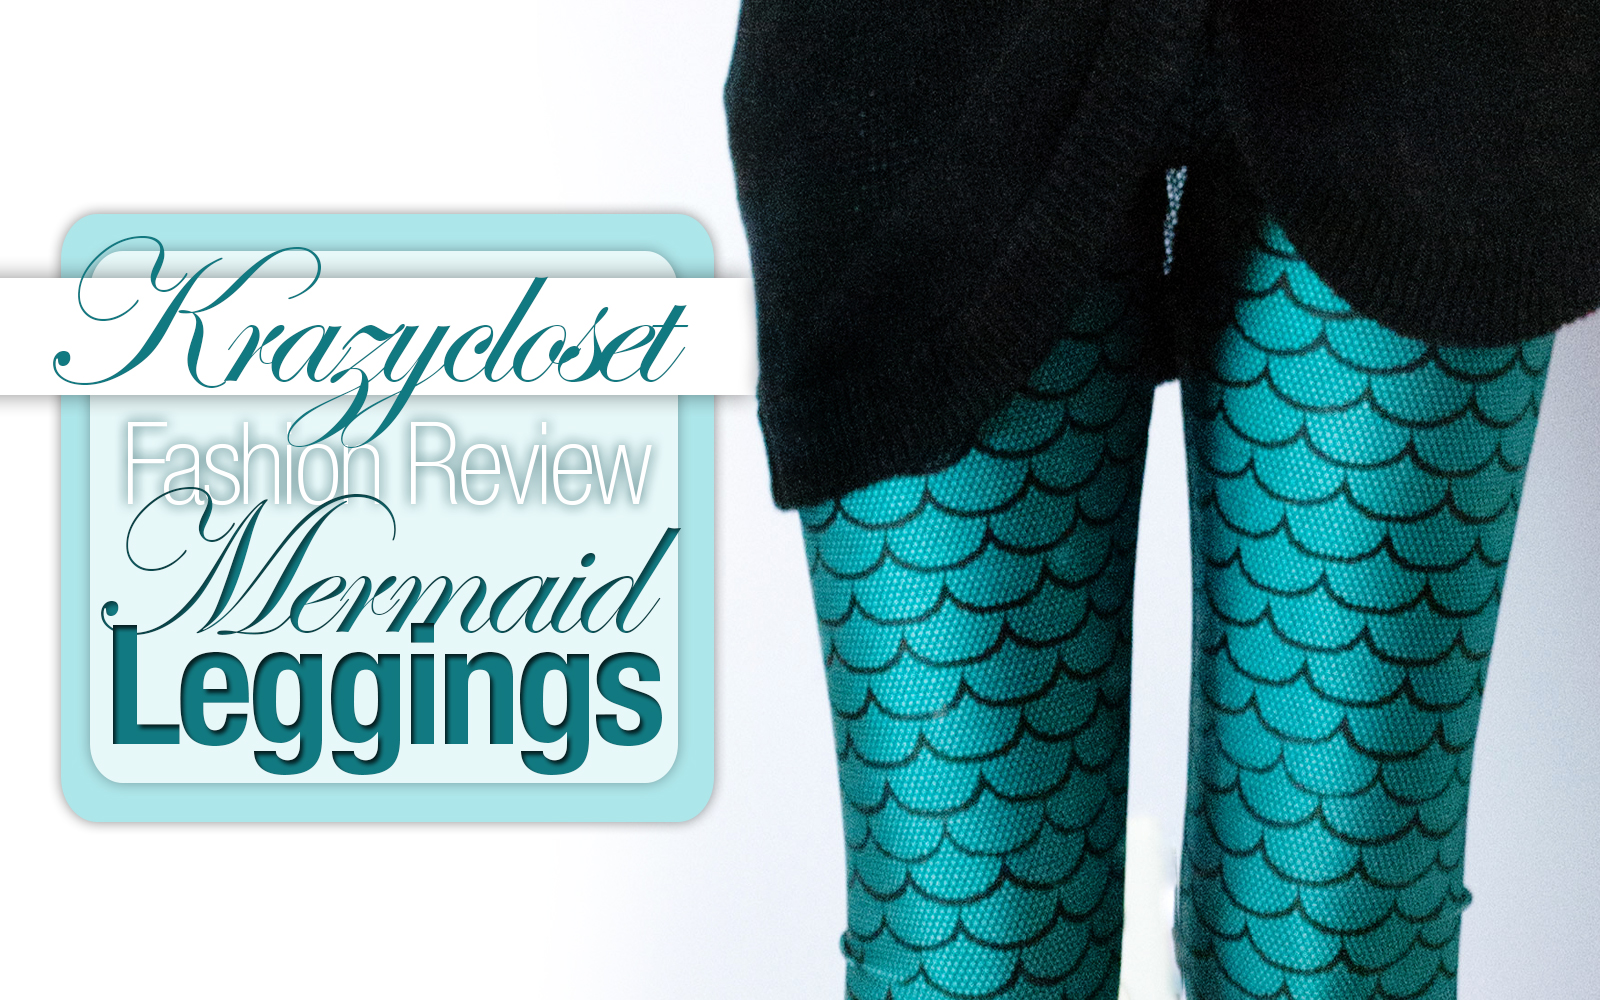 Intro photo for the review of the Mermaid Leggings from Krazycloset Clothing, previously Vanity Treasures on Storenvy.